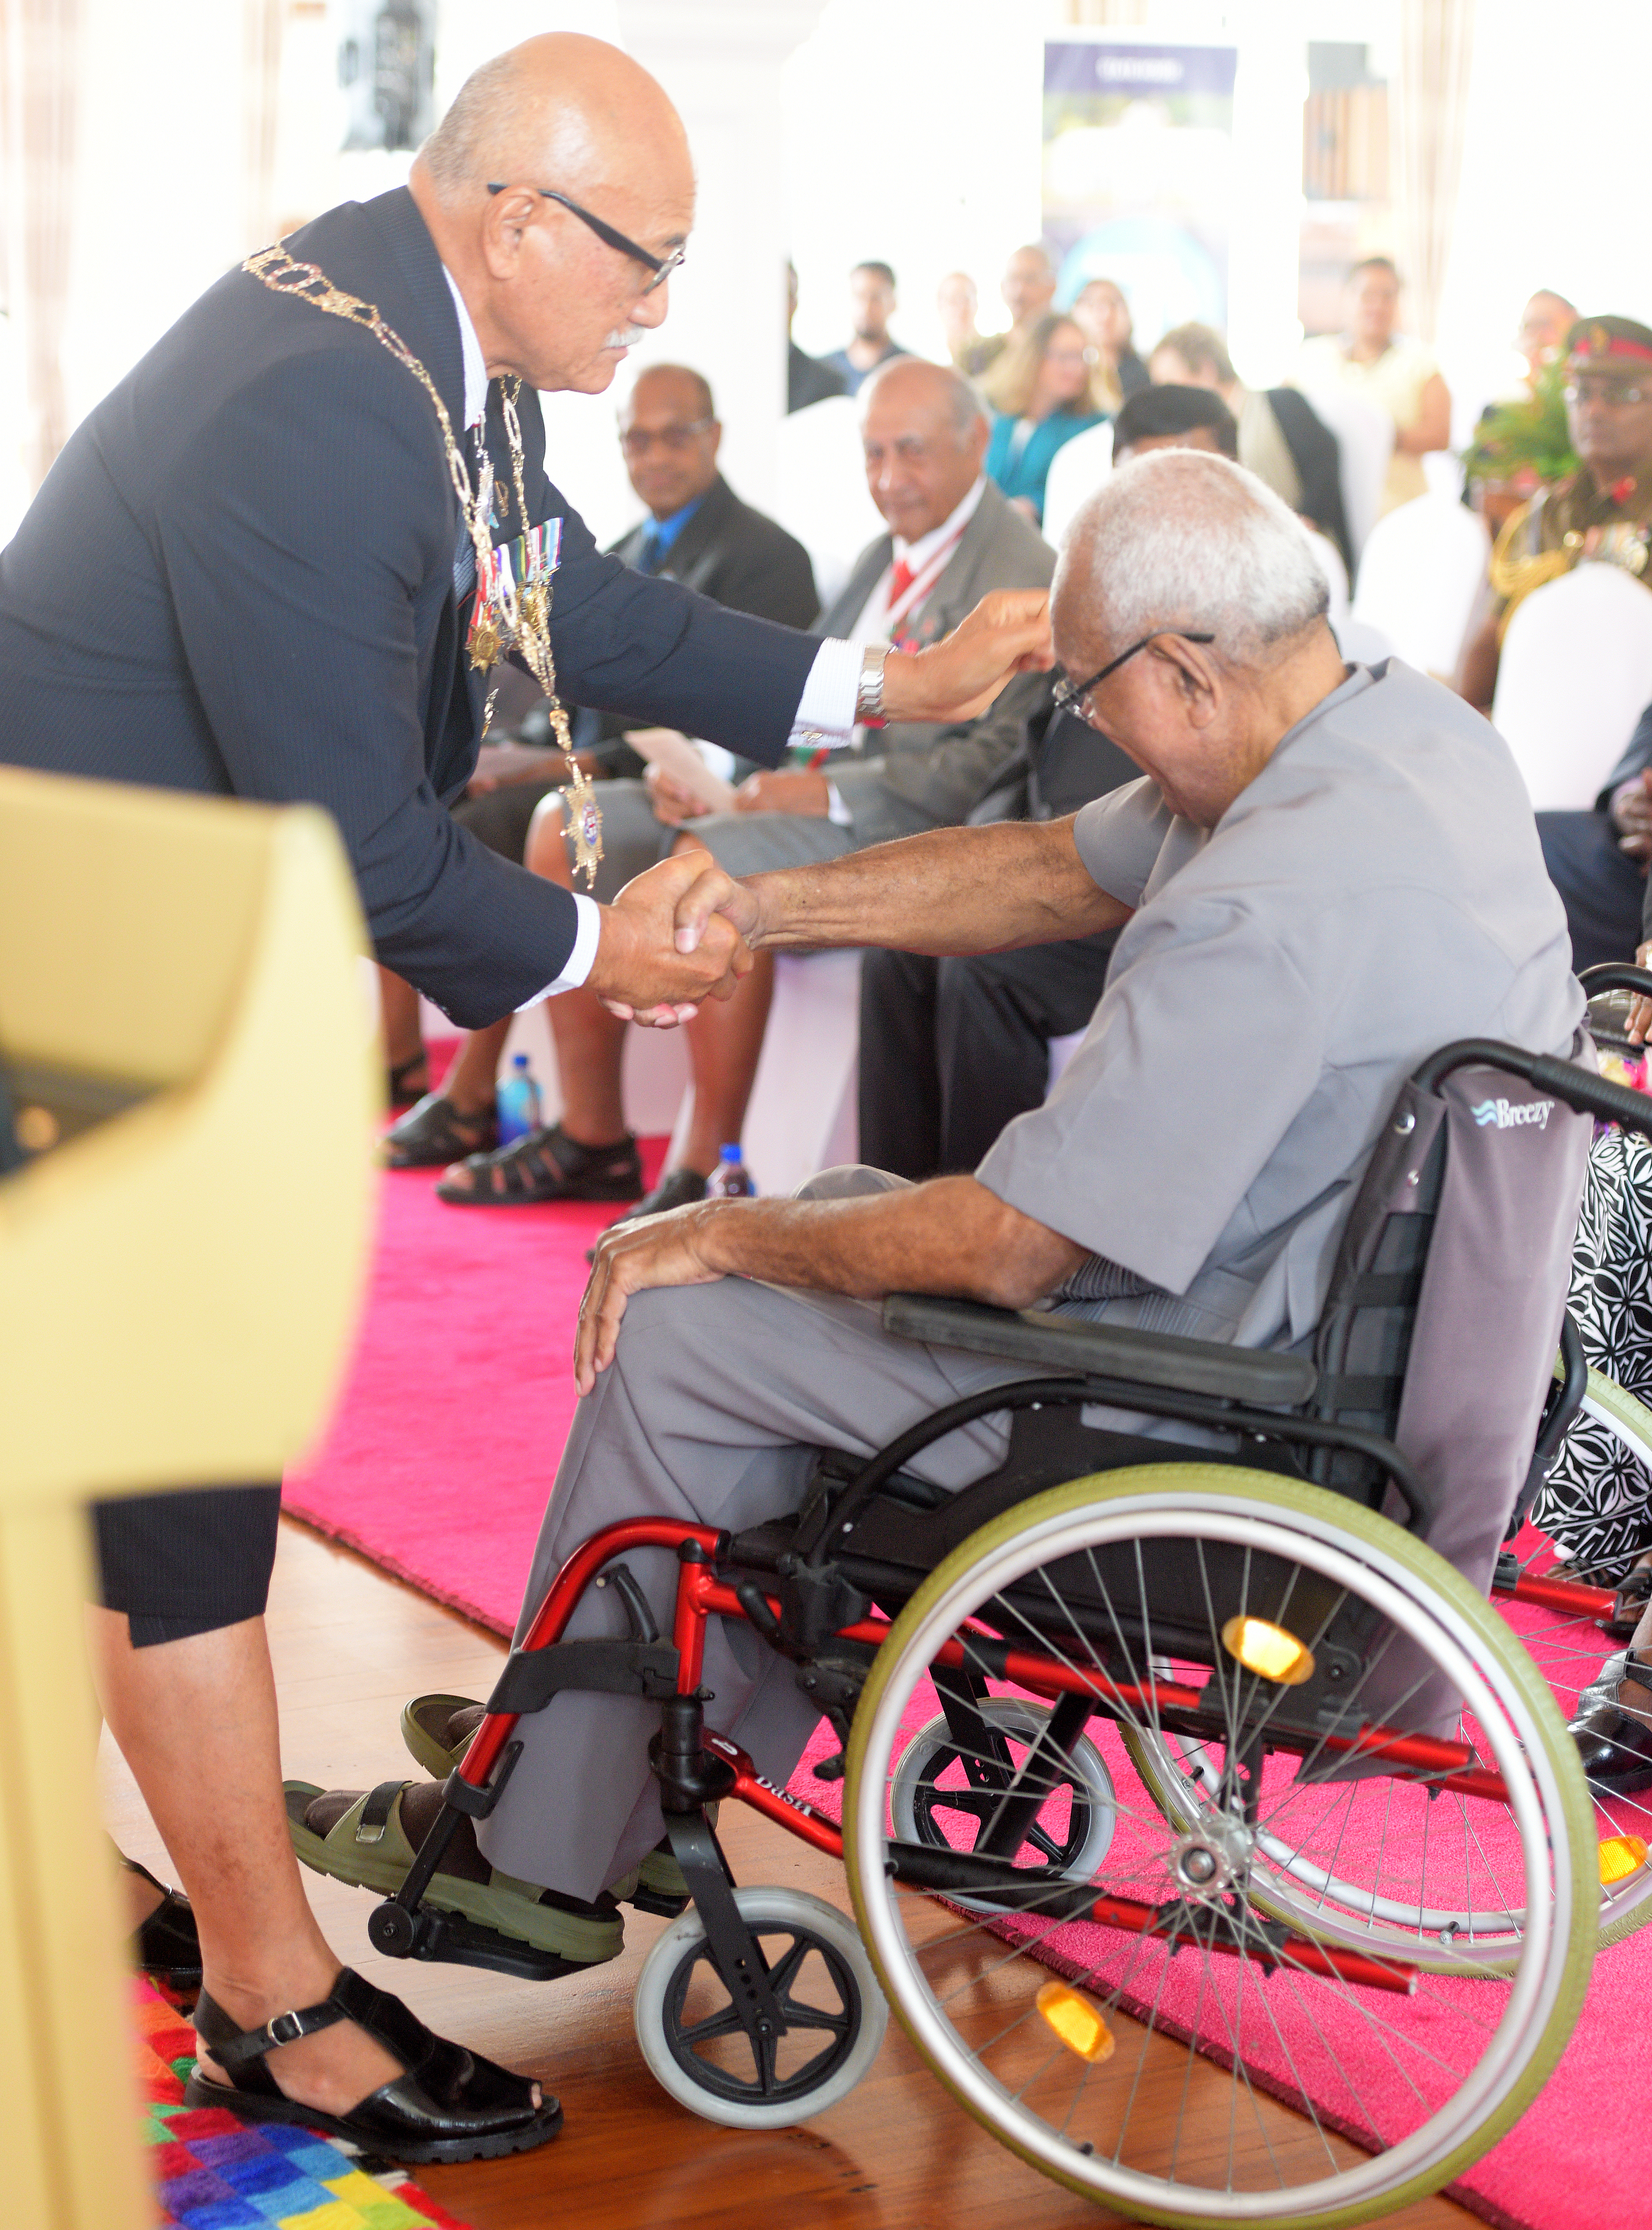 President Awards Lt. Col. Jimi Koroi with 50th anniversary of Independence commemorative medal during special investiture ceremony at State House on October 8, 2020. Photo: Ronald Kumar.